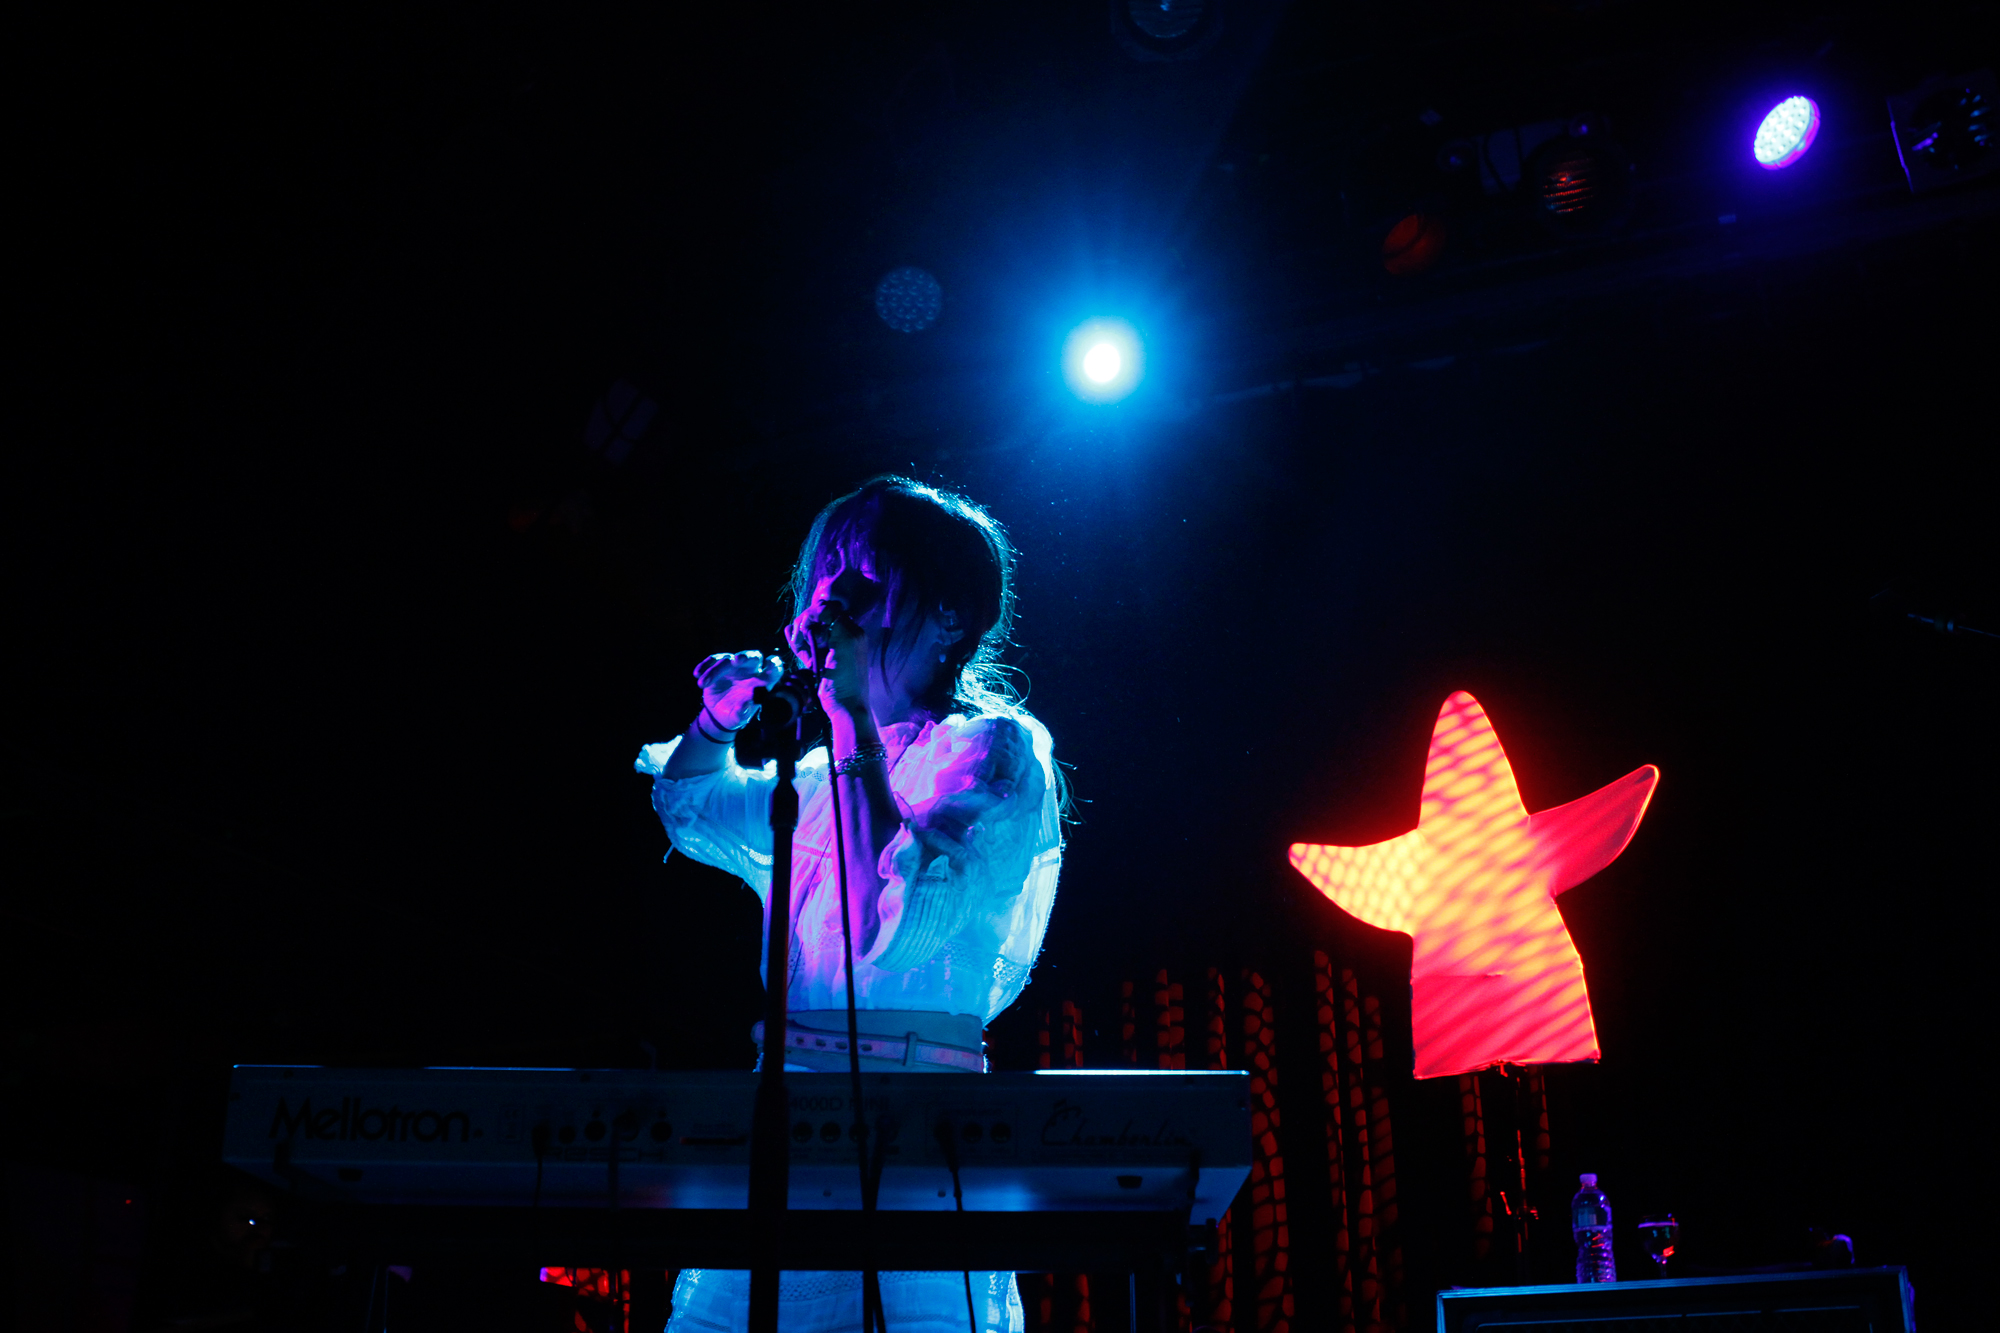 Blonde Redhead plays at Music Hall Of Williamsburg in Williamsburg, Brooklyn NY on Dec. 2, 2014.